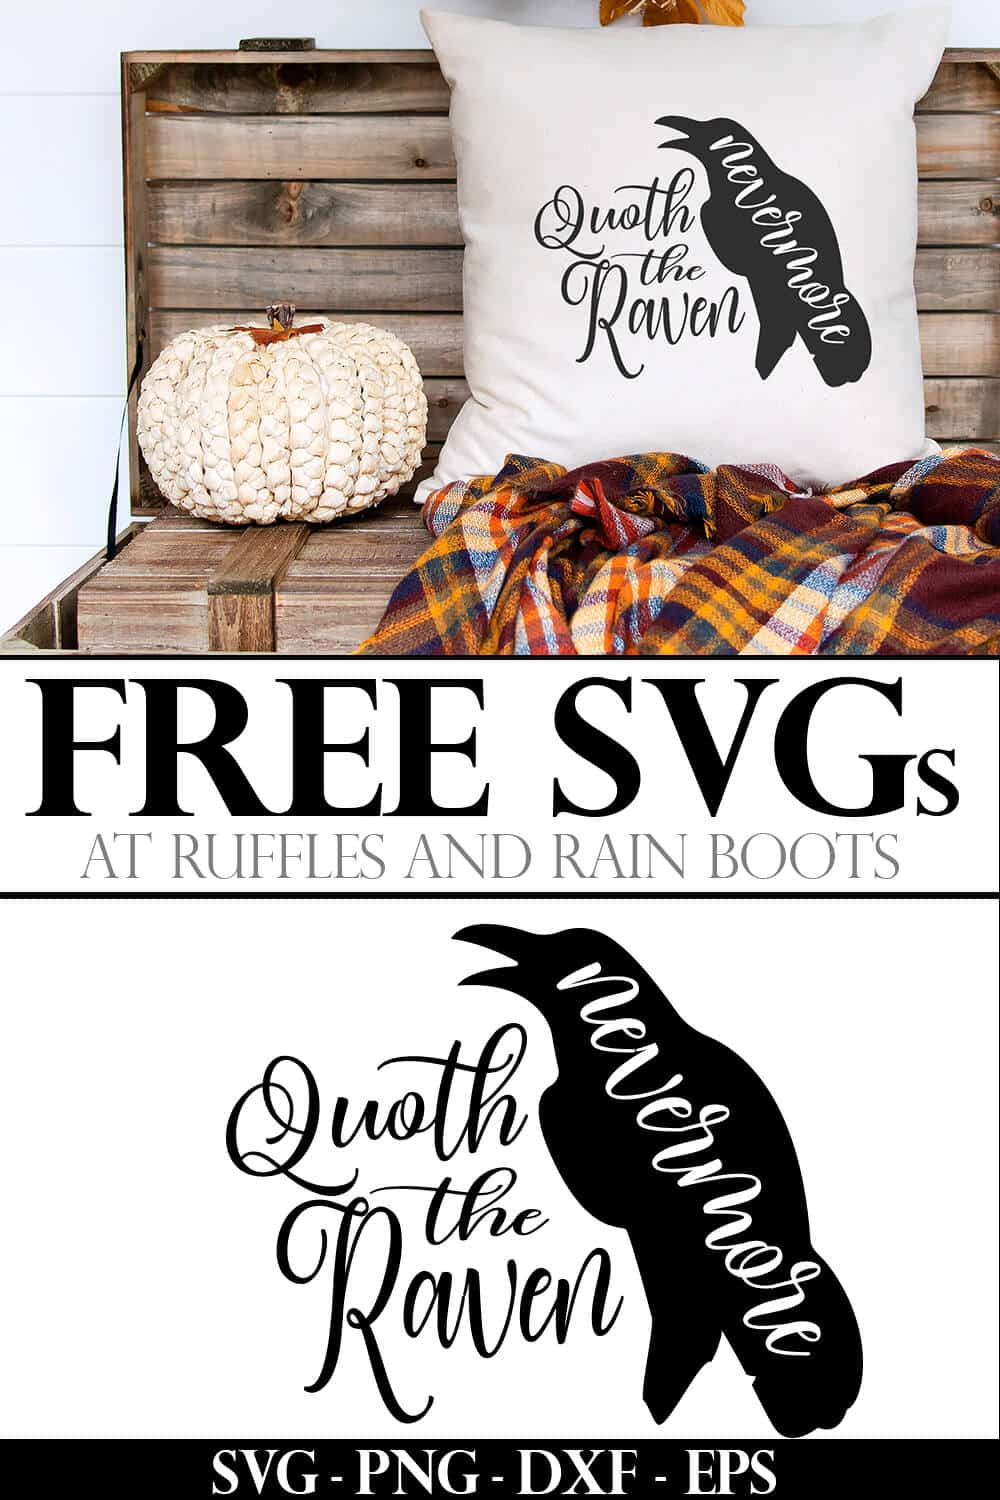 adorable and elegant quote the raven nevermore svg used on a white pillow propped on a fall scene with pumpkin and wooden trunk with text which reads free svg at ruffles and rain boots